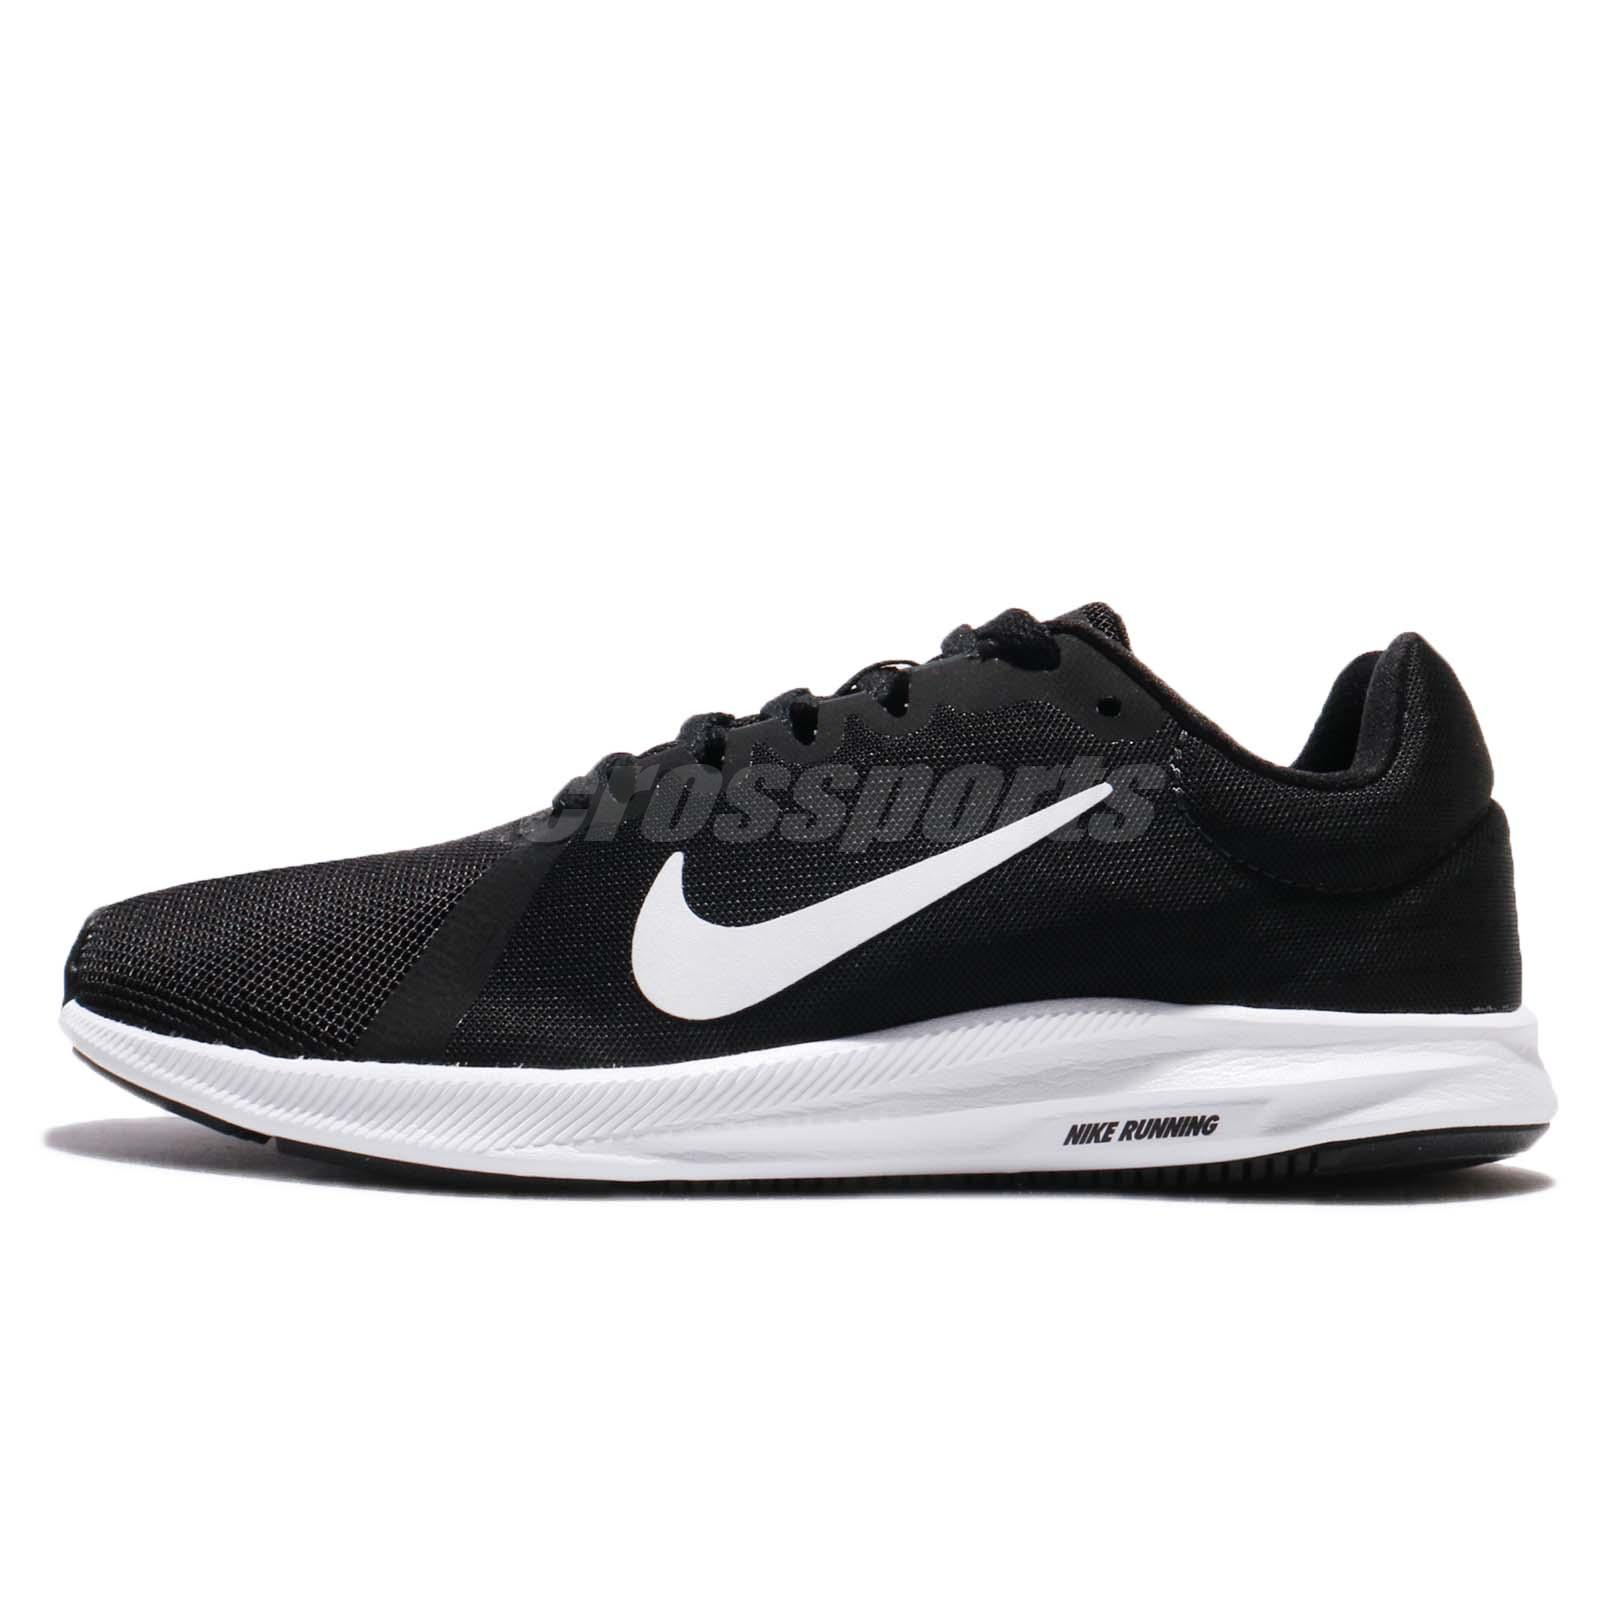 c40ba5590d7f Wmns Nike Downshifter 8 VIII Black White Anthracite Women Running 908994-001